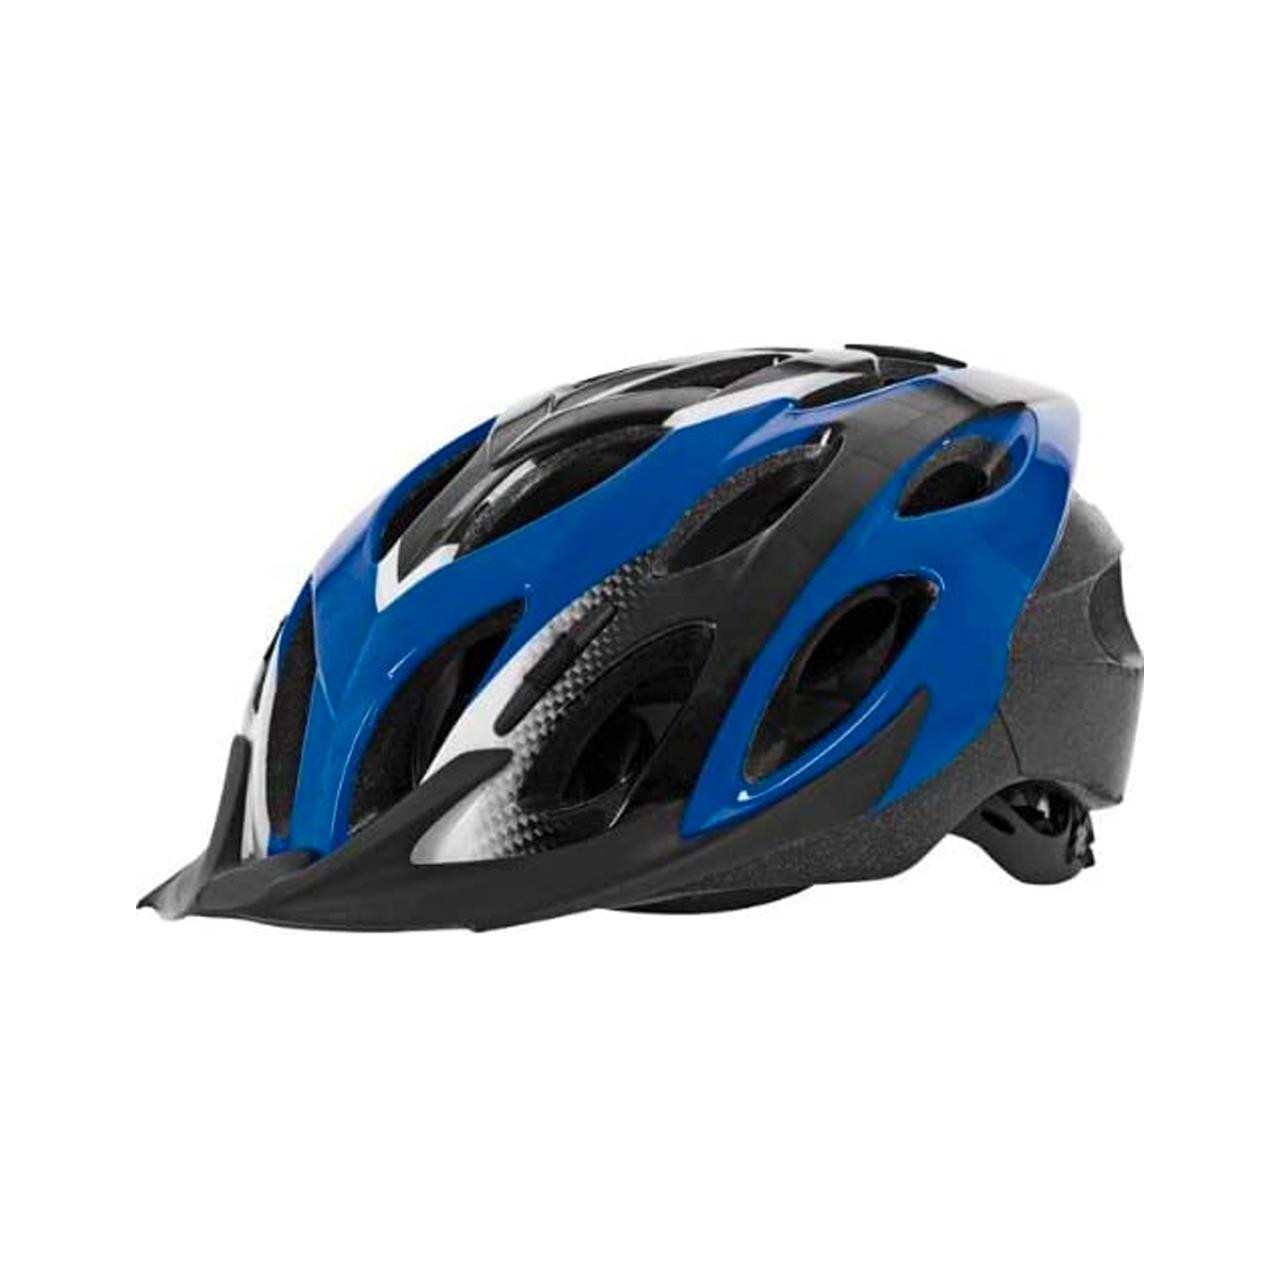 Raleigh Ventura Cycle Helmet (Blue, 58-62 cm)